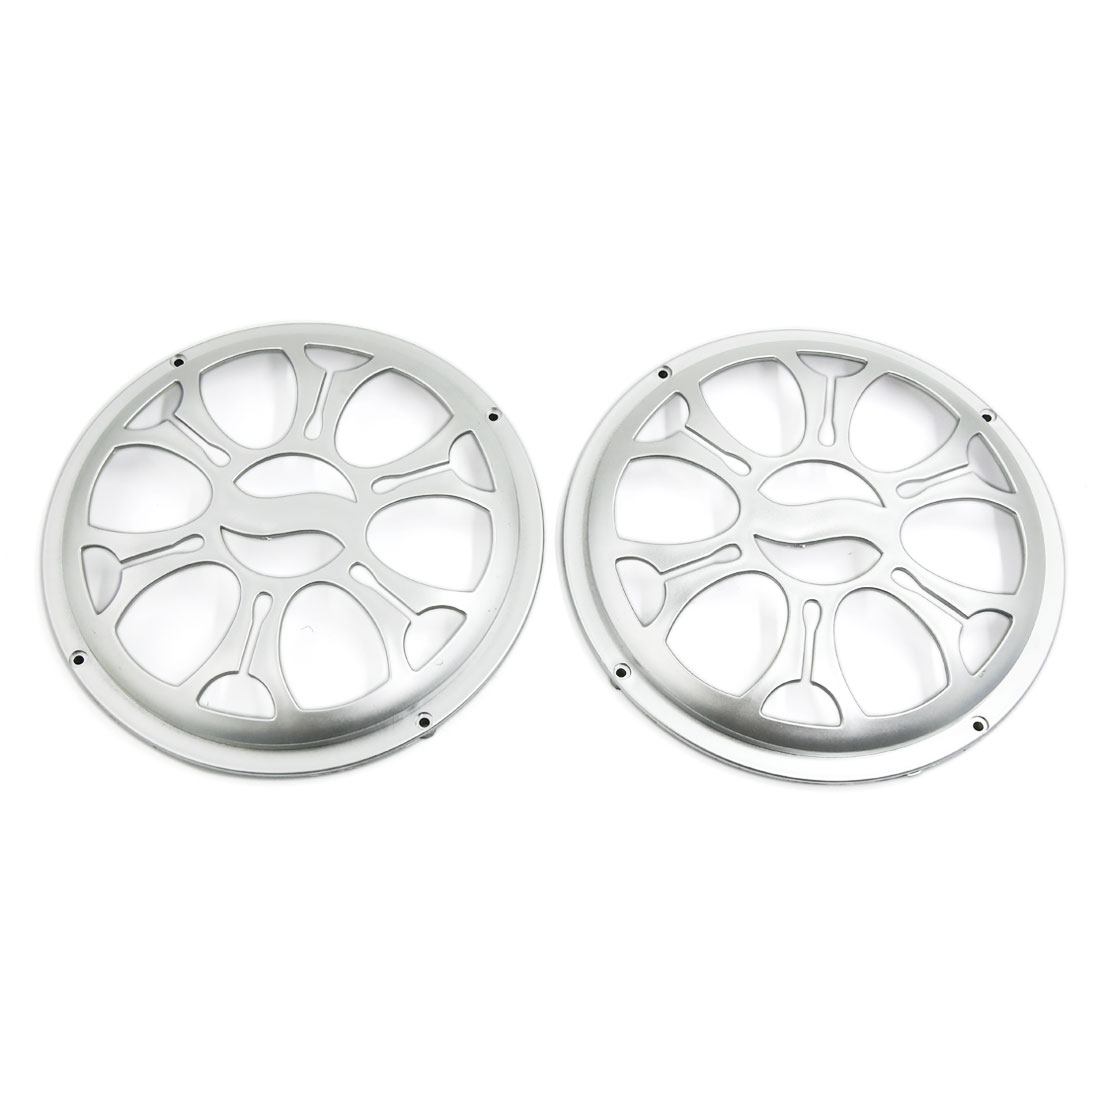 "Plastic 8"" Car Speaker Subwoofer Grill Protective Dust Cover Sliver Tone Pair"